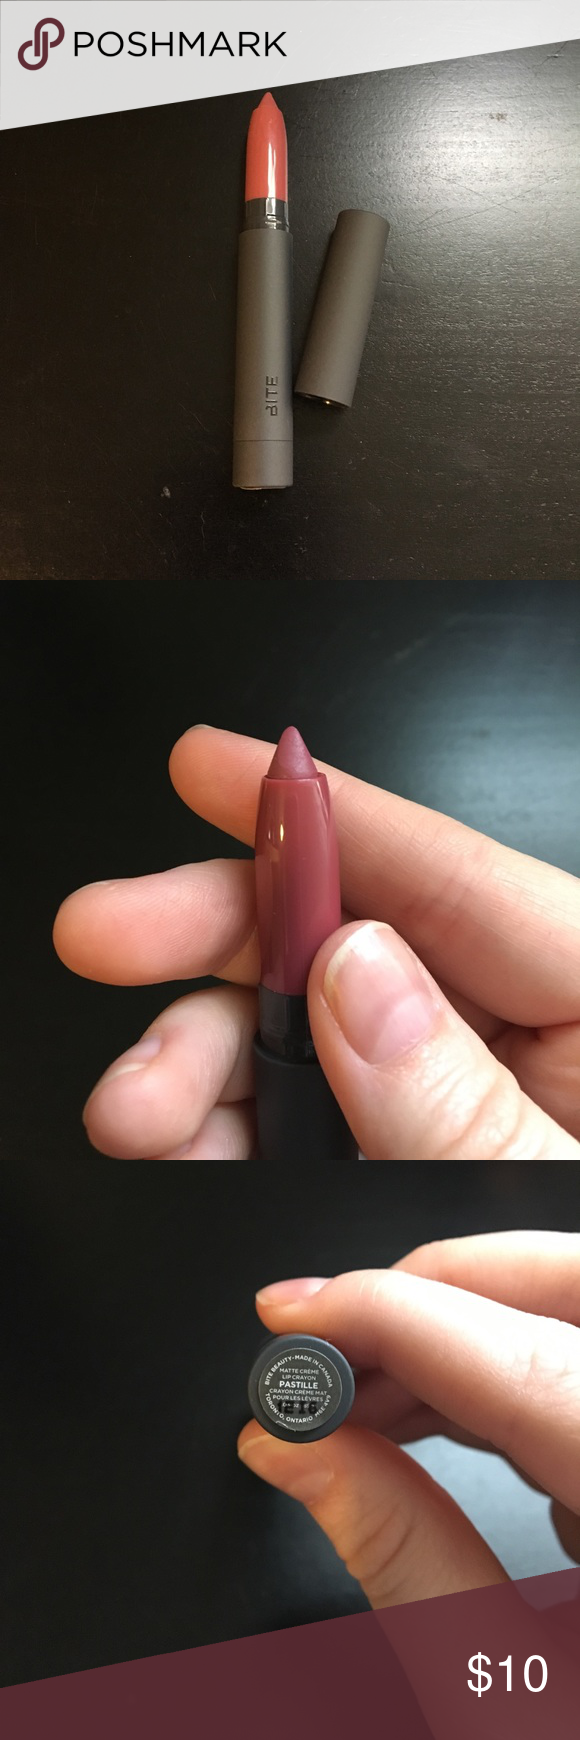 Bite Beauty Matte Creme Lip Crayon Swatched once. Price